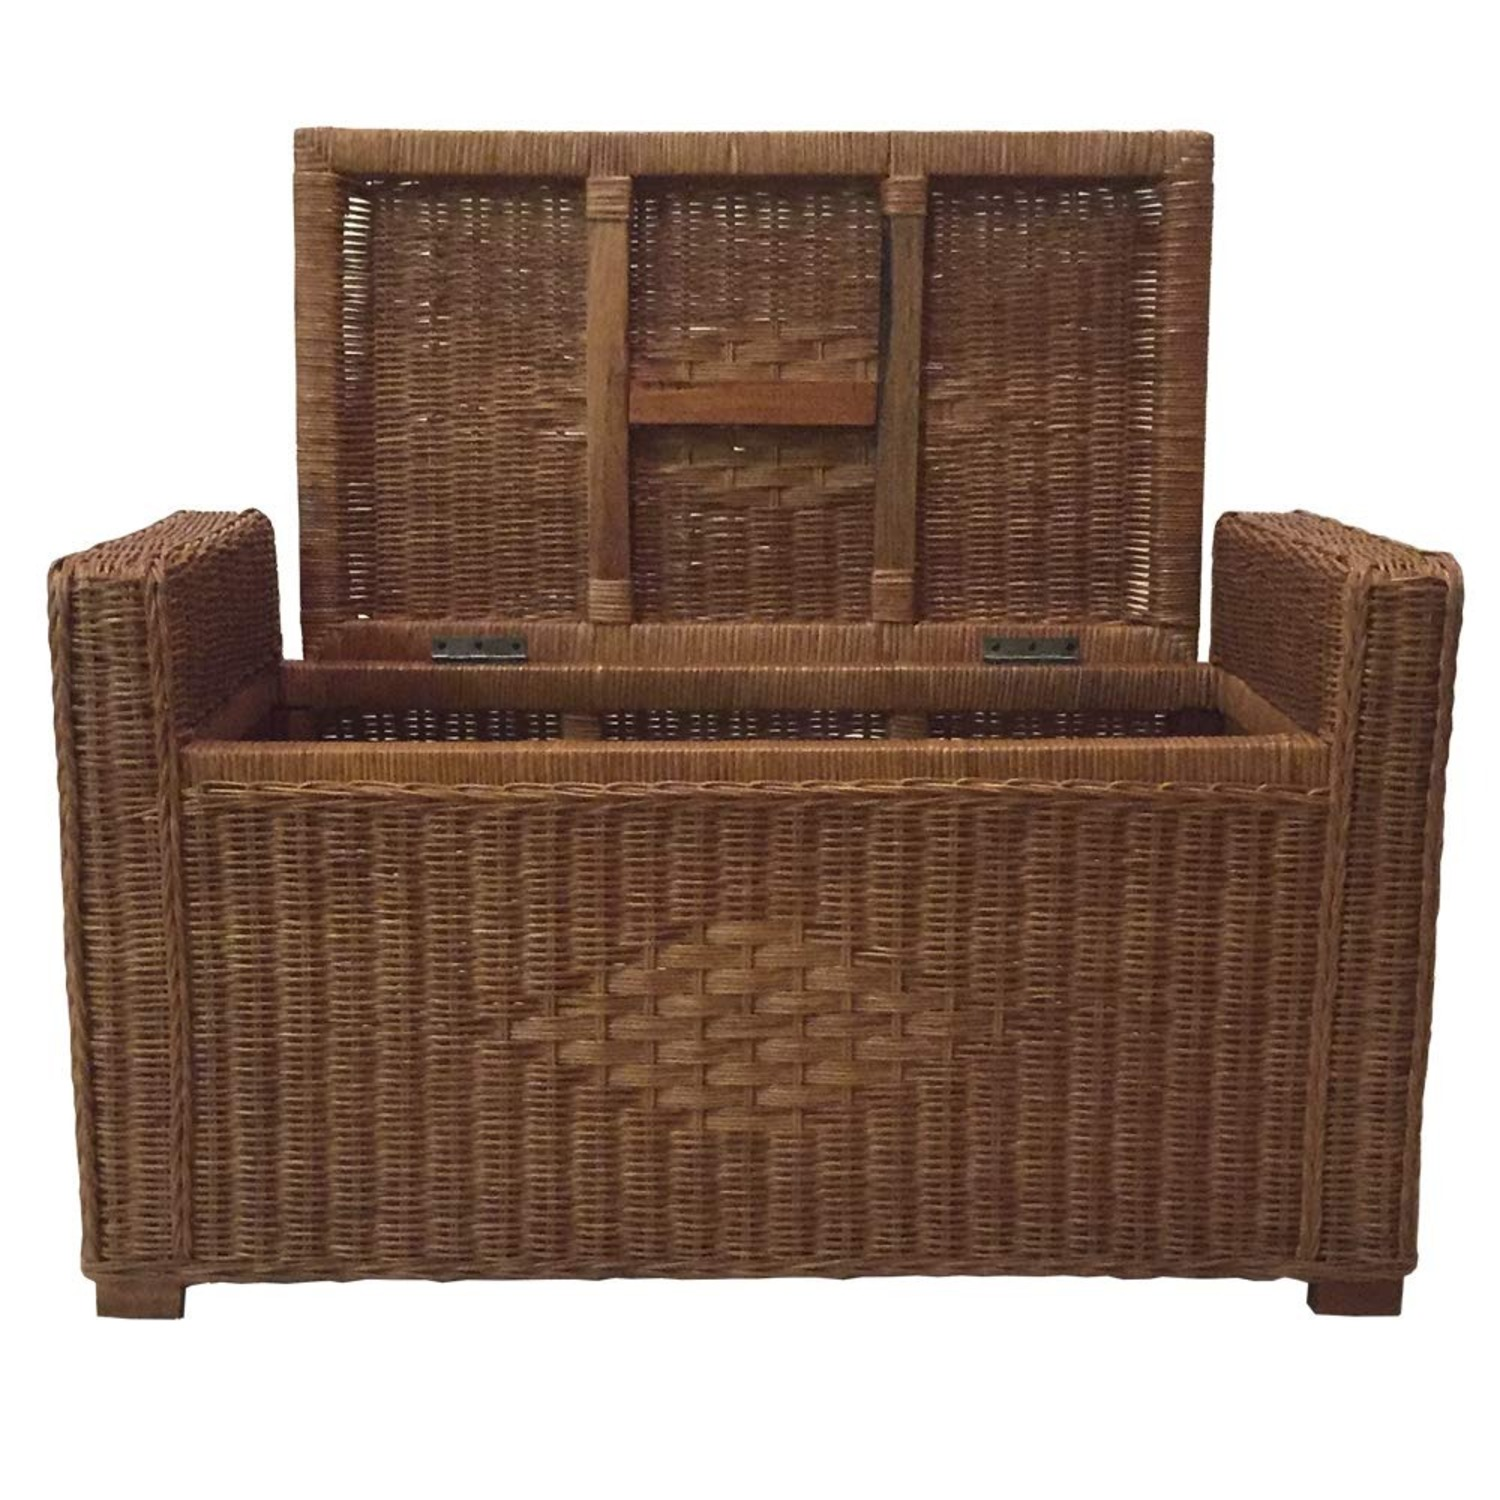 Adam Light Brown Rattan Chest Storage Ottoman - image-4